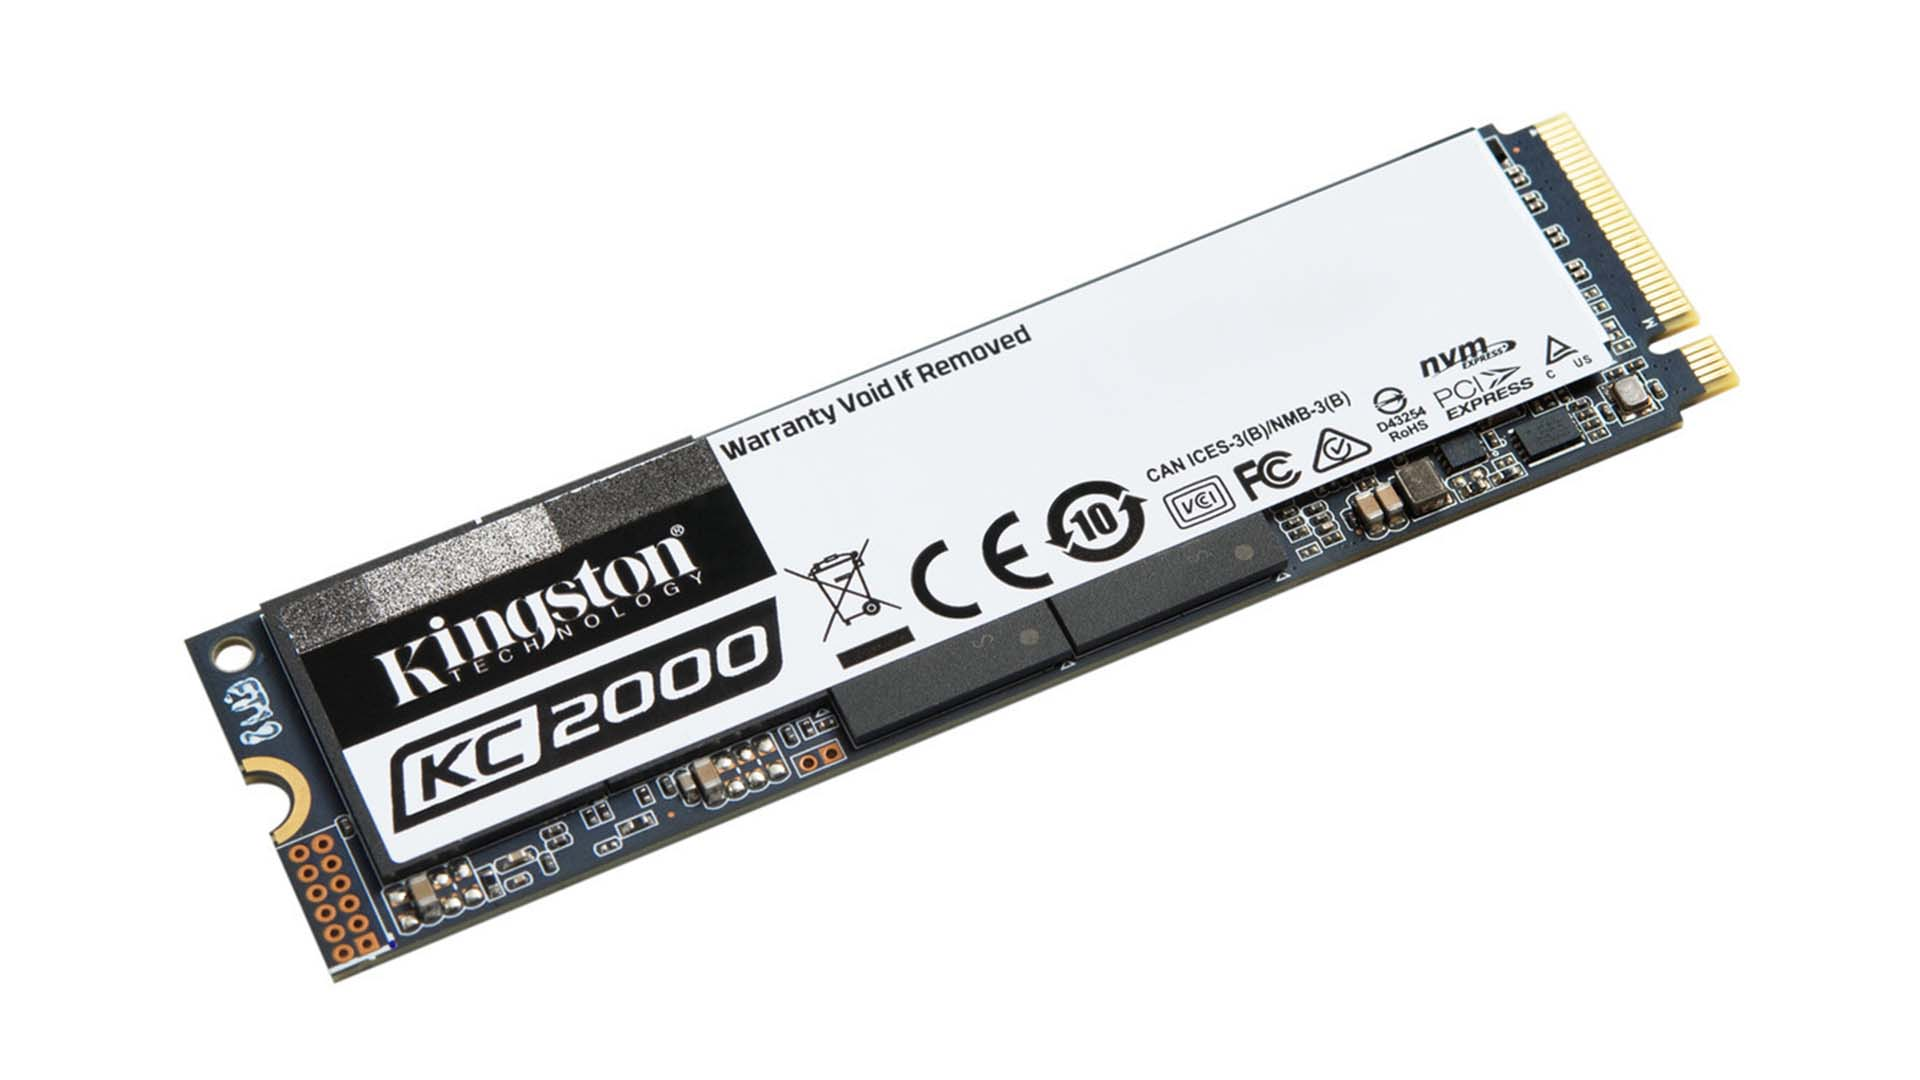 96 層 3D TLC NAND Flash 與 SM2262EN 控制器,Kingston KC2000 M.2 NVMe SSD 登場